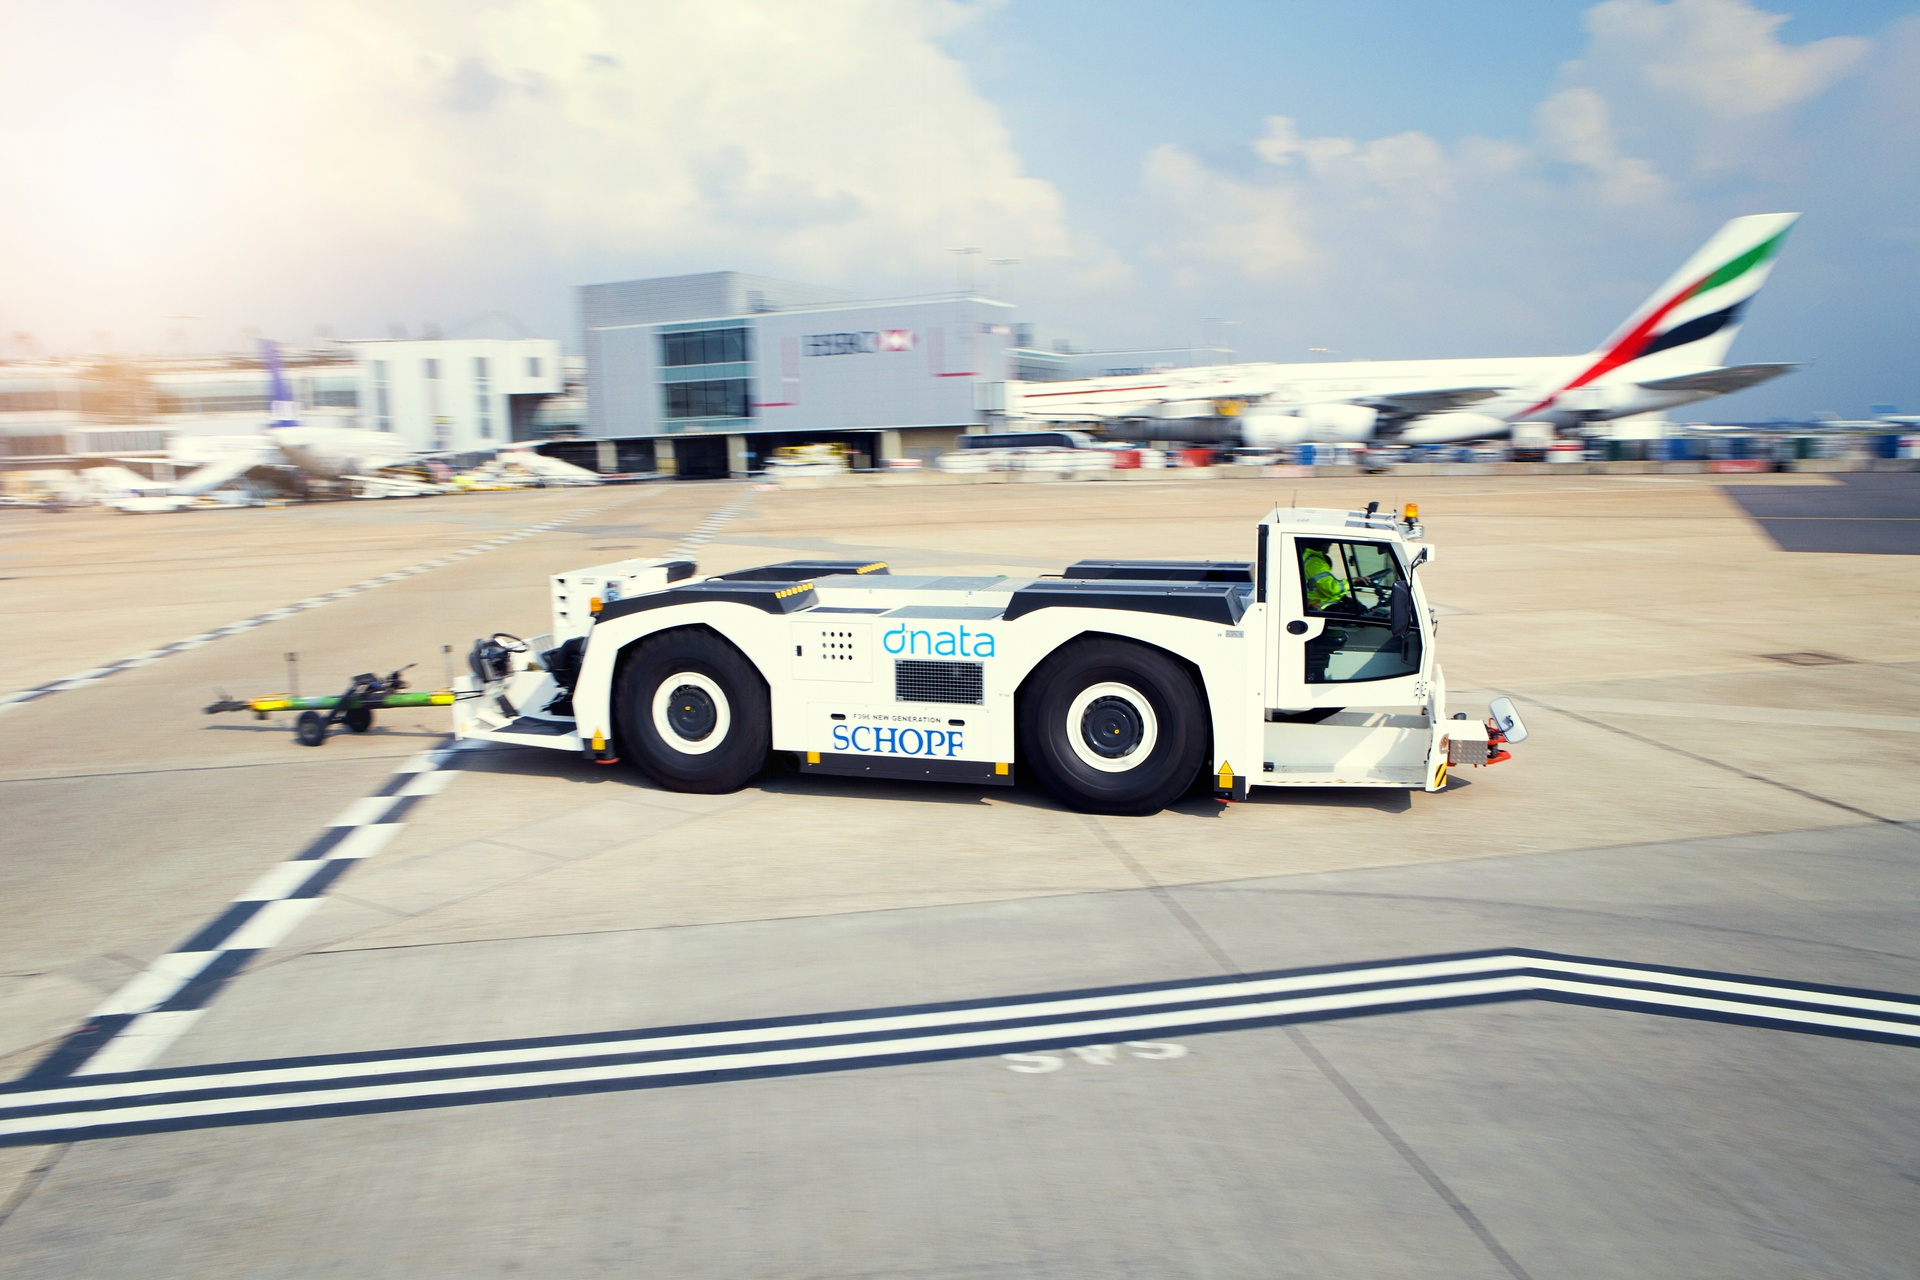 Pushback Tractors play a crucial role in making sure aircraft are positioned precisely on the taxiway for the aircraft to taxi to their take-off.